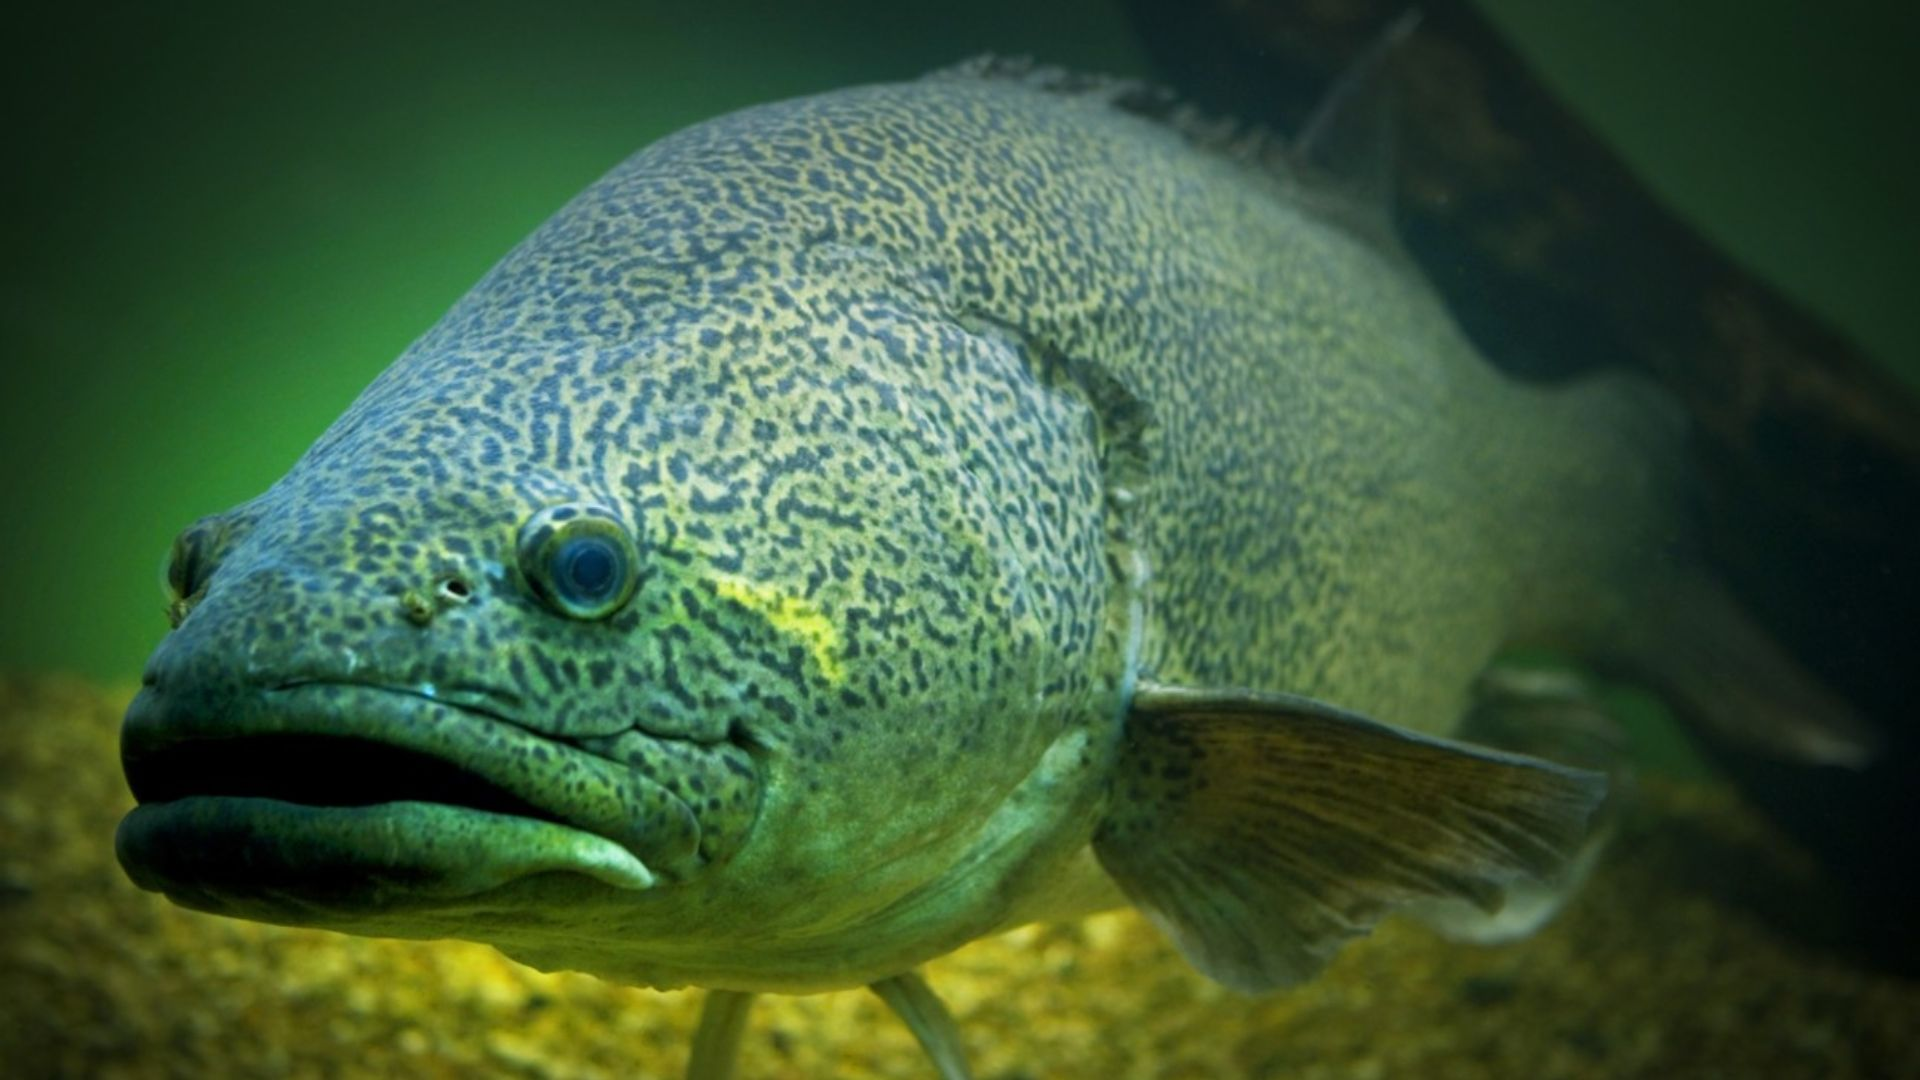 A year on from the Menindee fish kills, what's been done to avert another crisis?